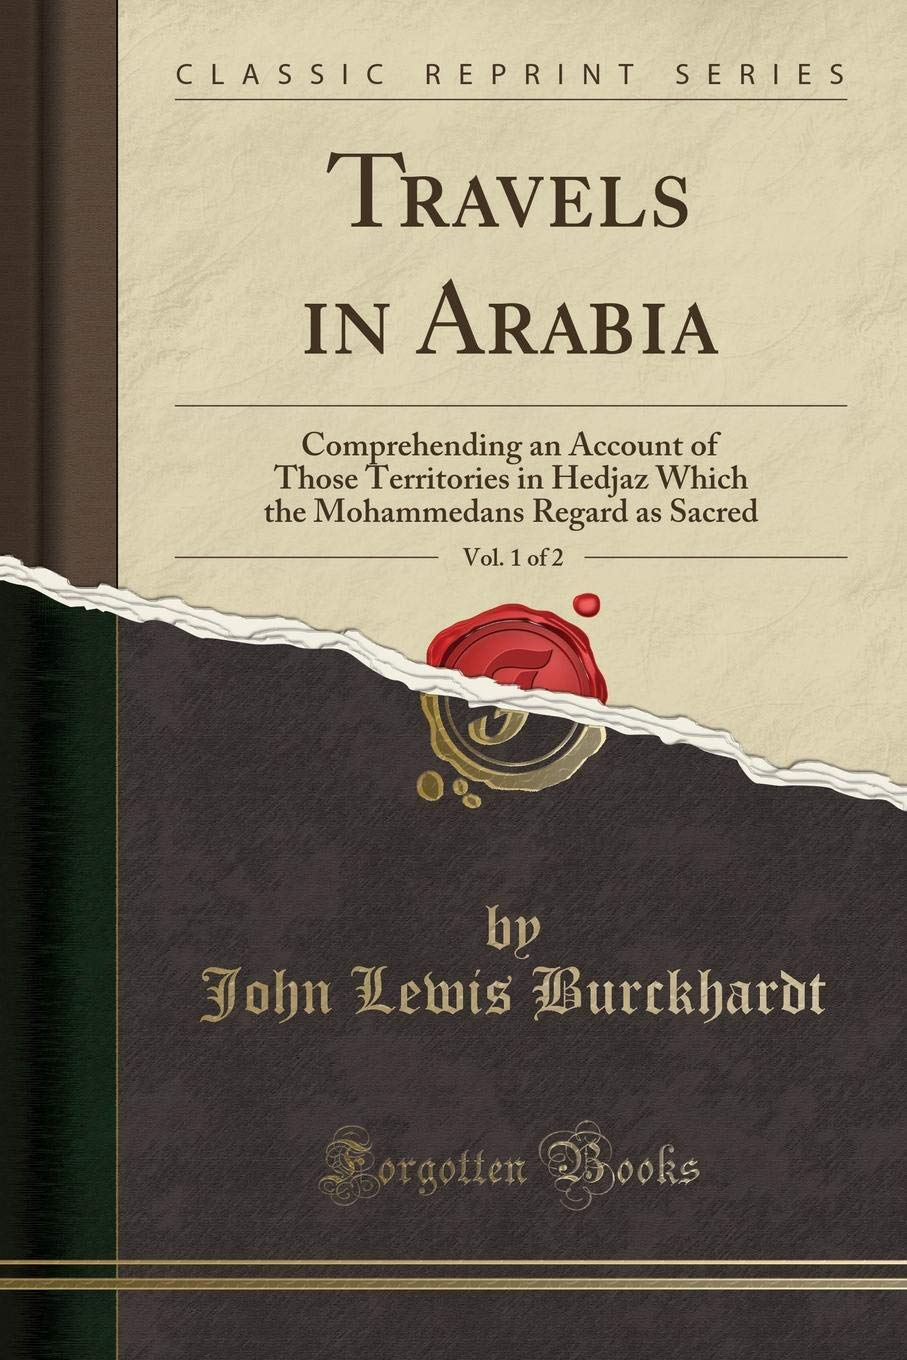 Travels in Arabia, Vol. 1 of 2: Comprehending an Account of Those Territories in Hedjaz Which the Mohammedans Regard as Sacred (Classic Reprint) ebook